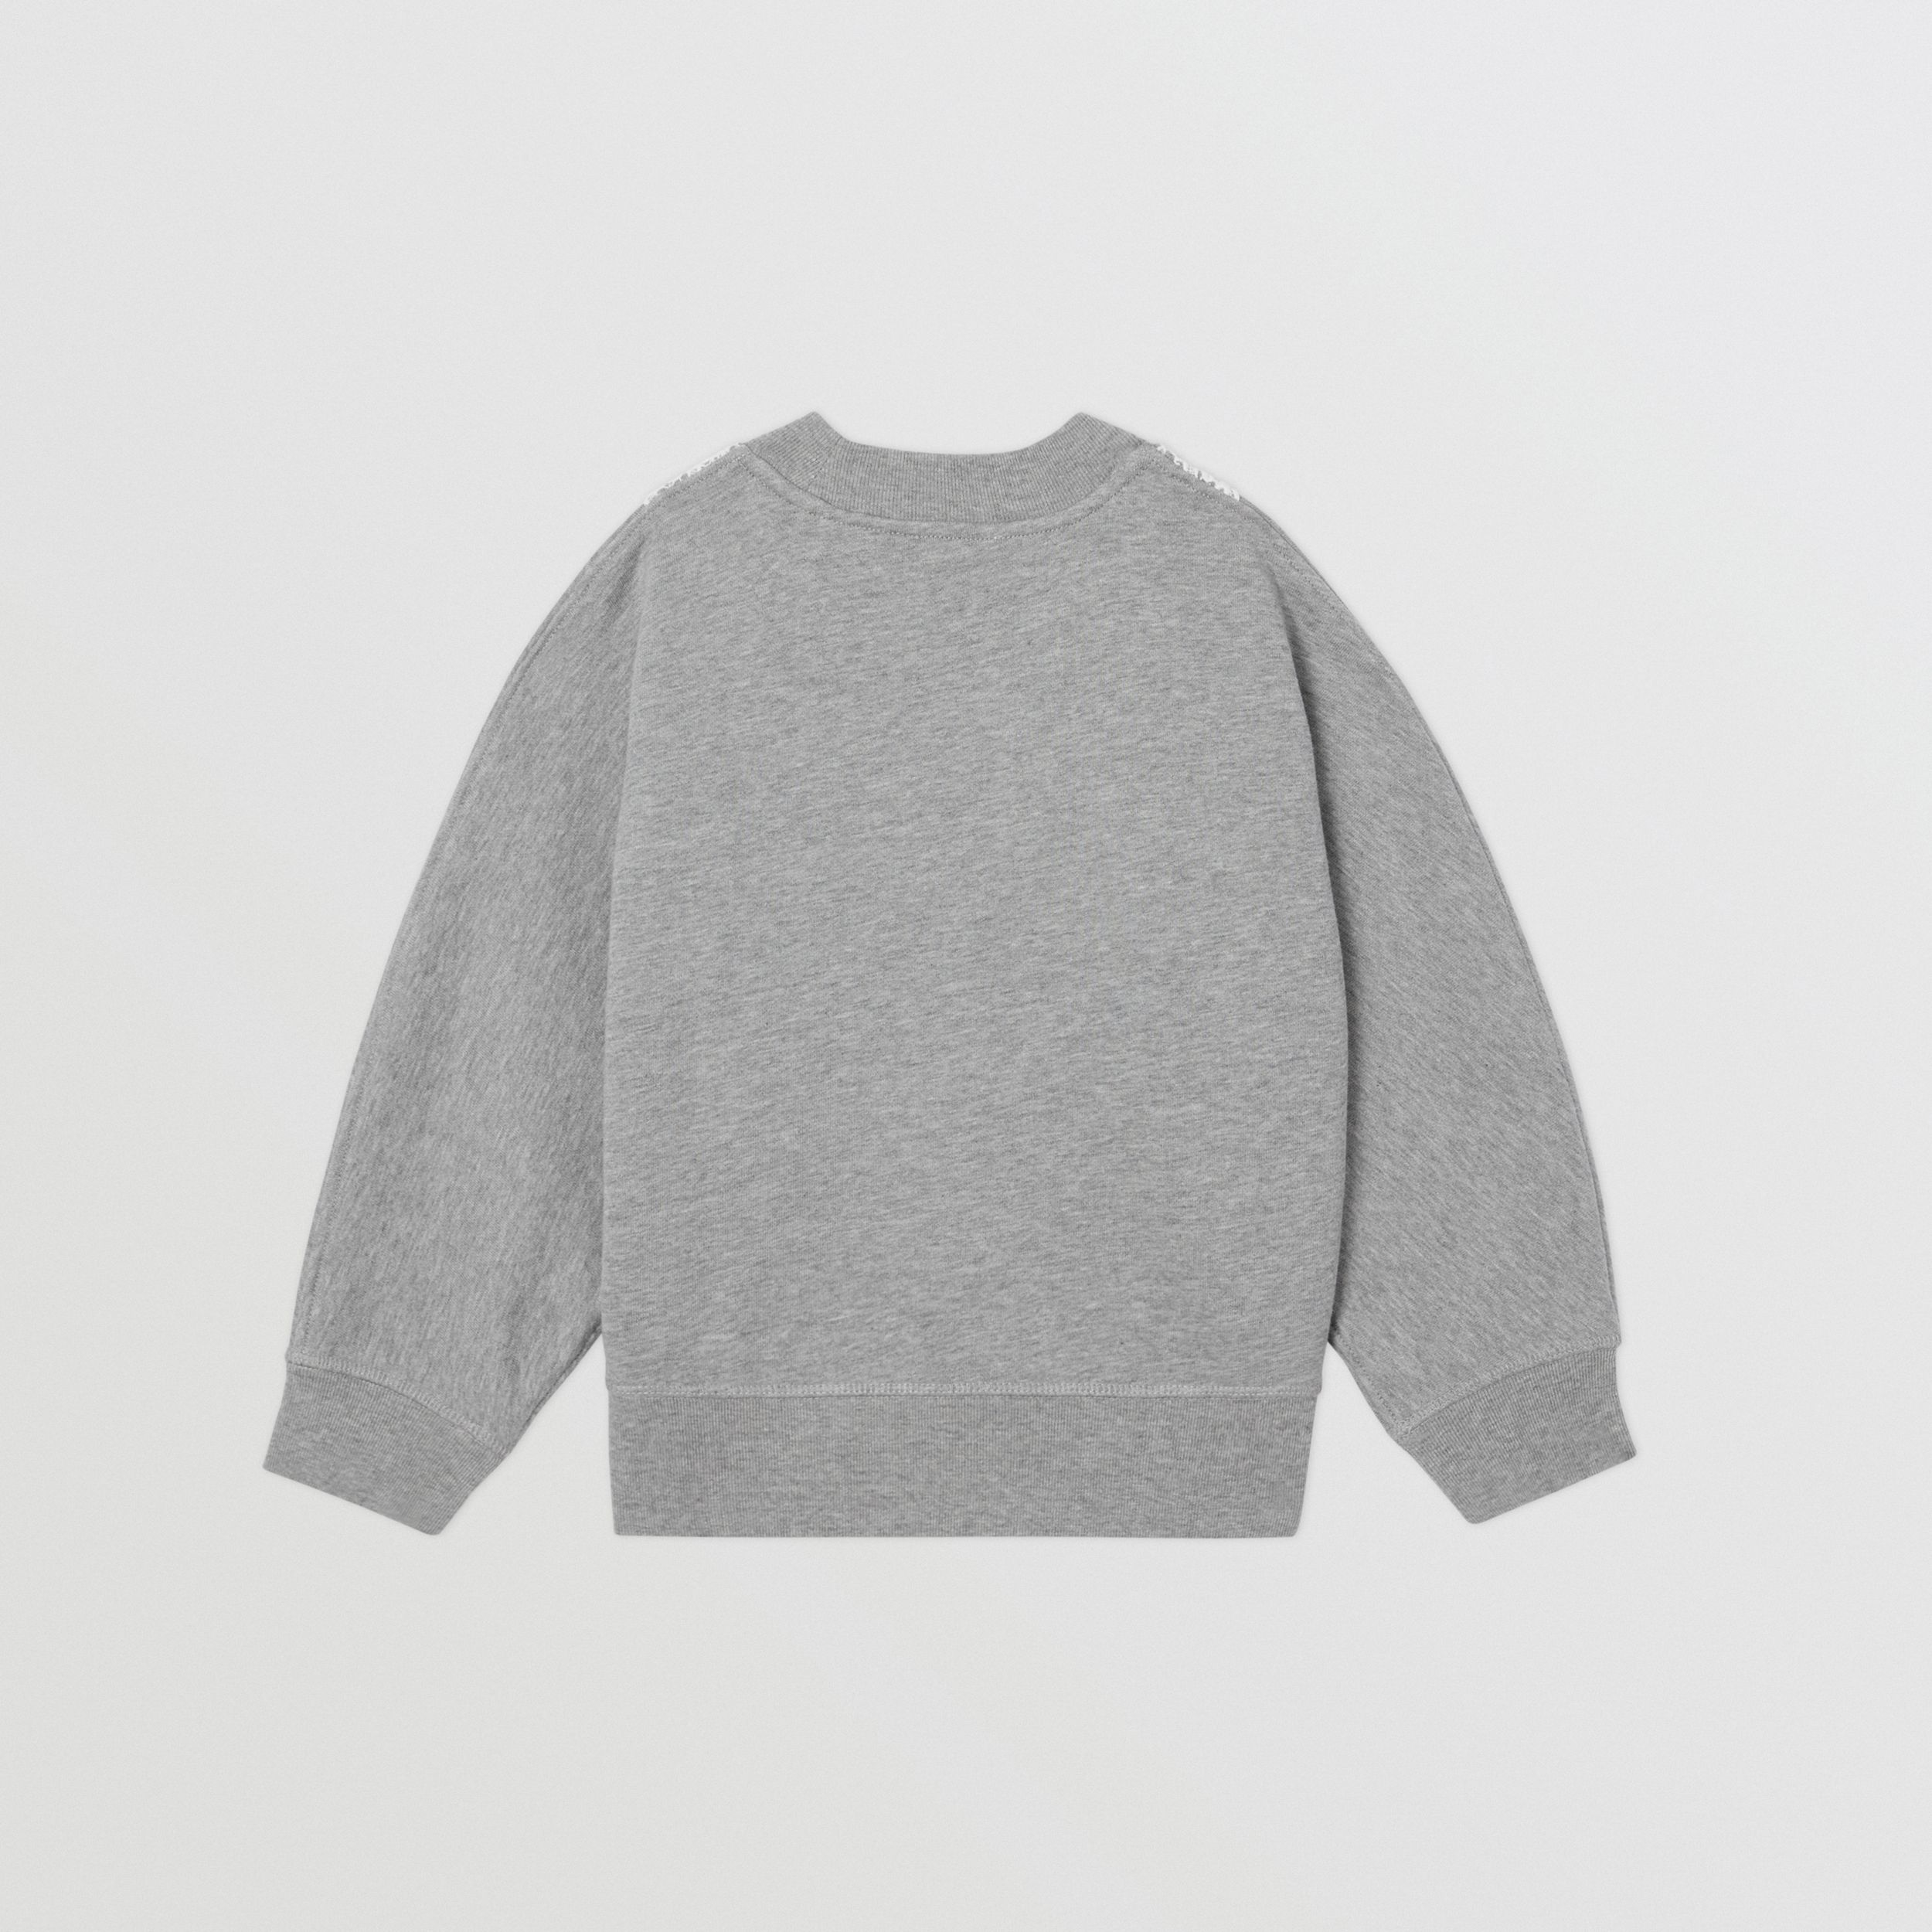 Logo Embroidered Lace Panel Cotton Sweatshirt in Grey Melange | Burberry United Kingdom - 4